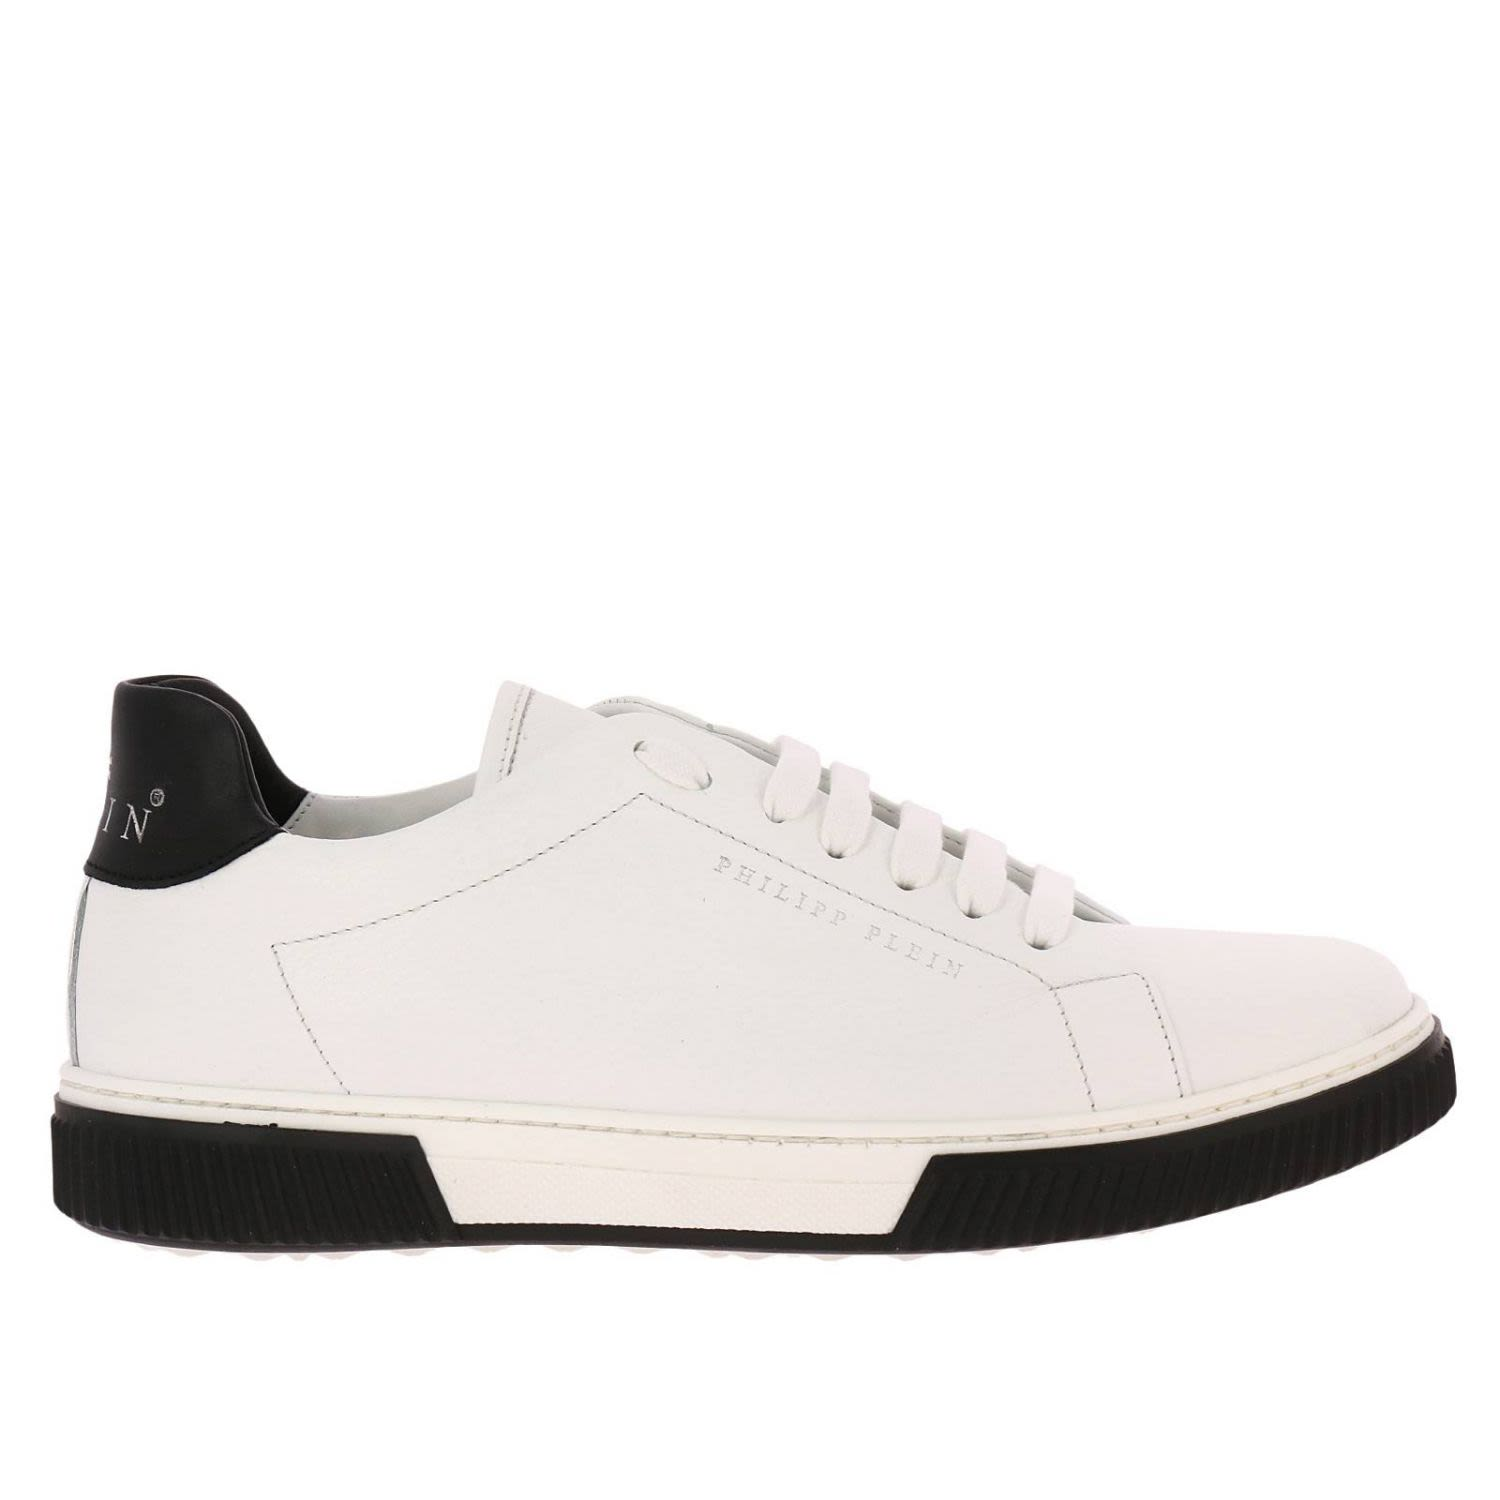 Philipp Plein Sneakers Shoes Men Philipp Plein